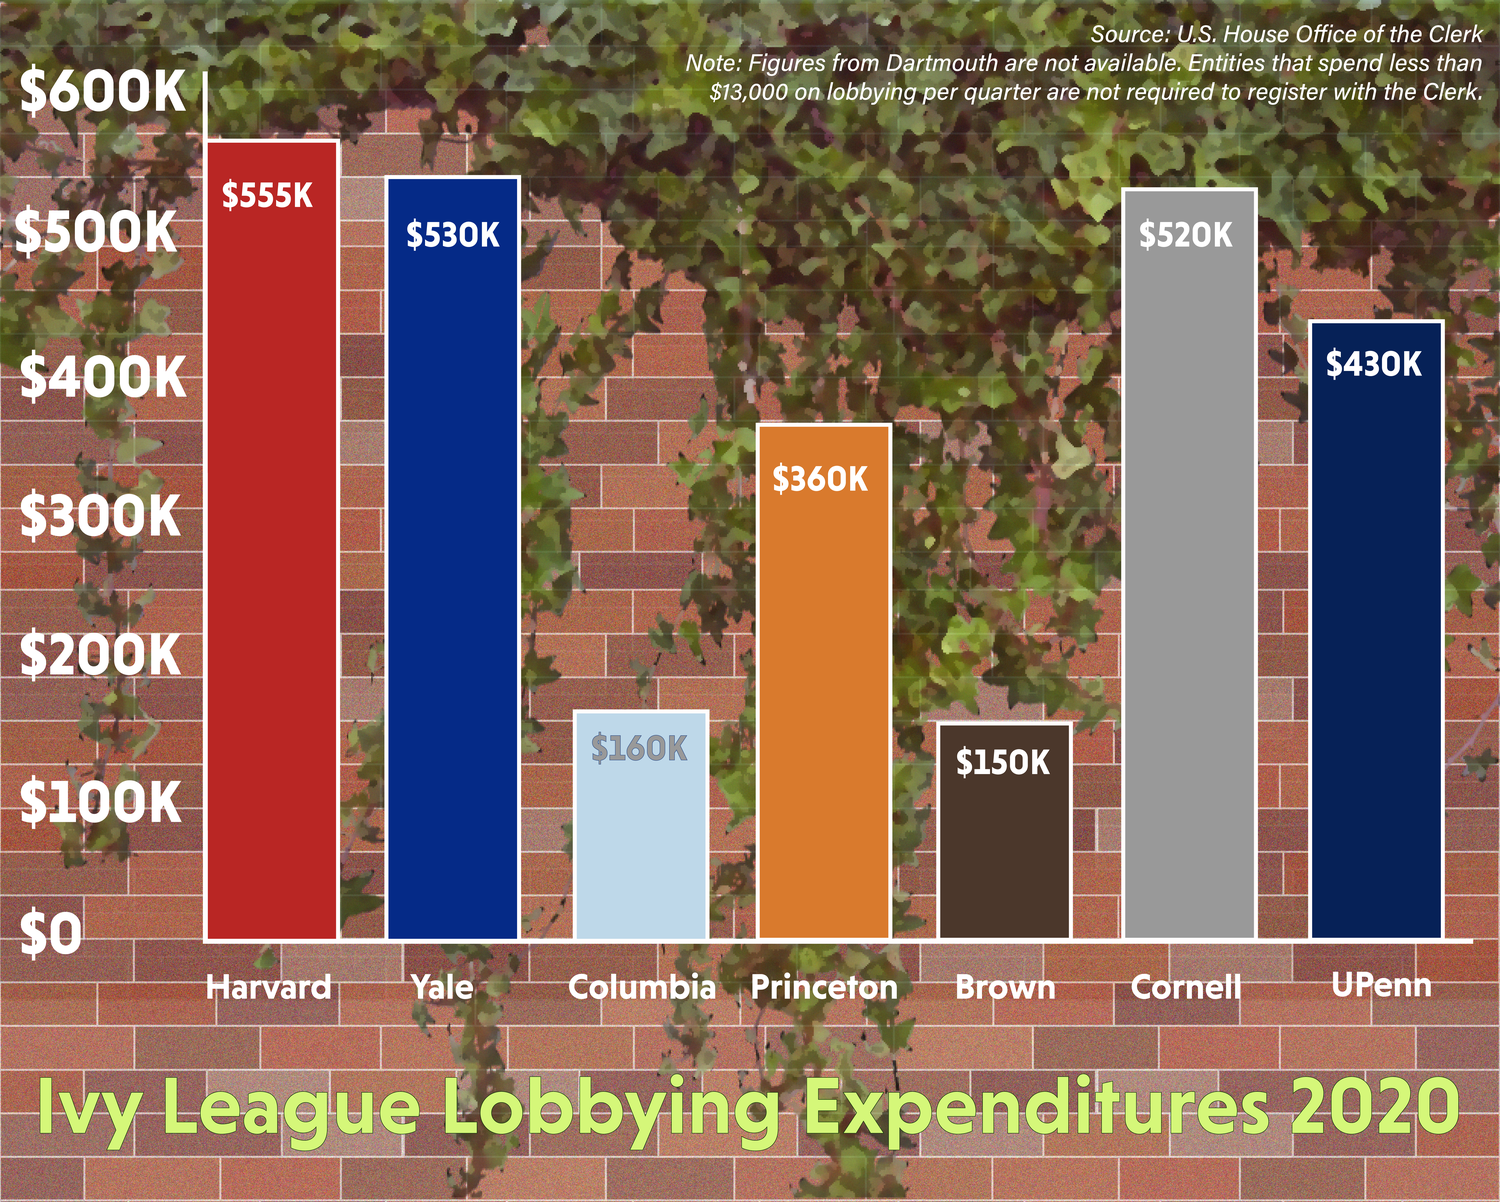 Harvard spent $555,000 on federal lobbying in 2020, outpacing all other Ivy League schools for the fourth time in the last five years.